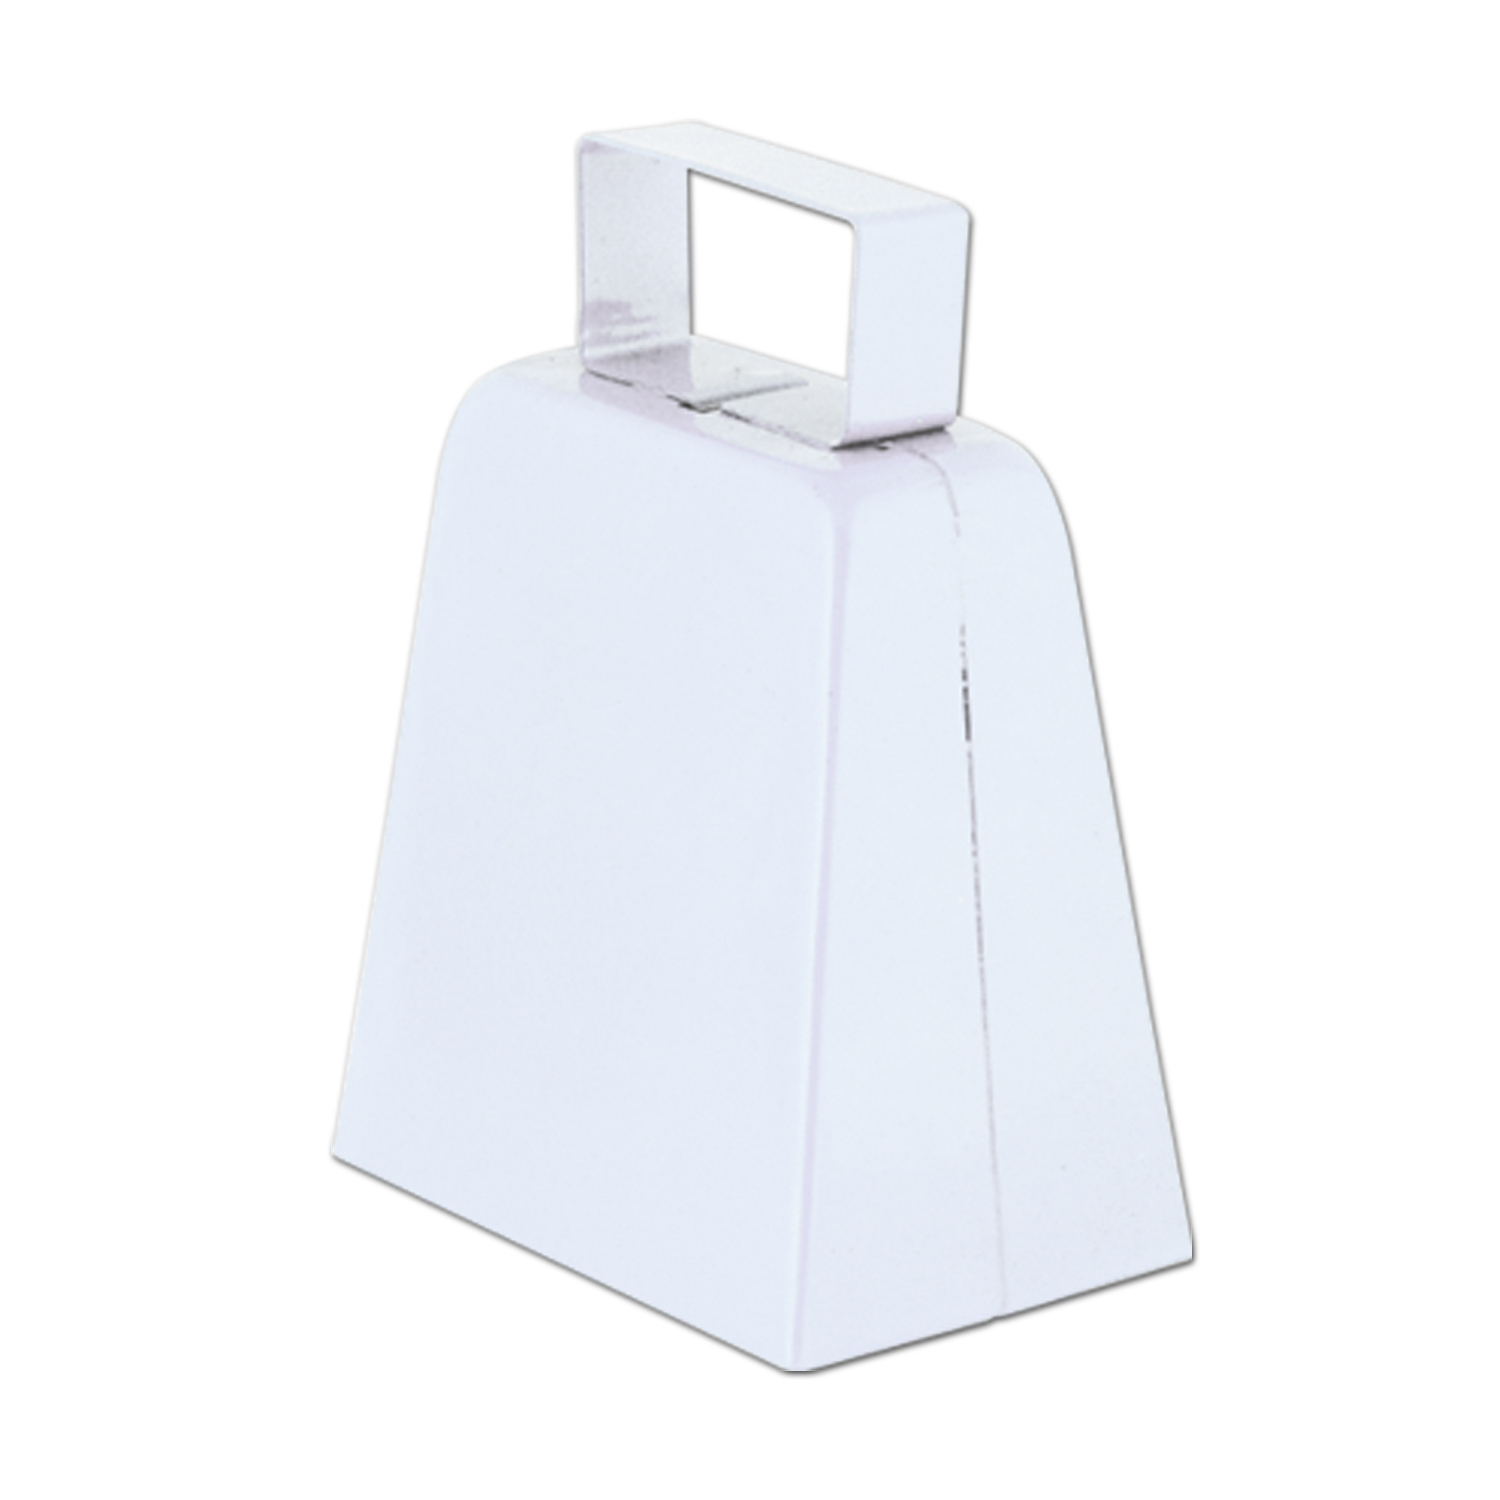 Cowbells (Pack of 12) white, cowbell, football, basketball, new years eve, party favor, wholesale, inexpensive, bulk